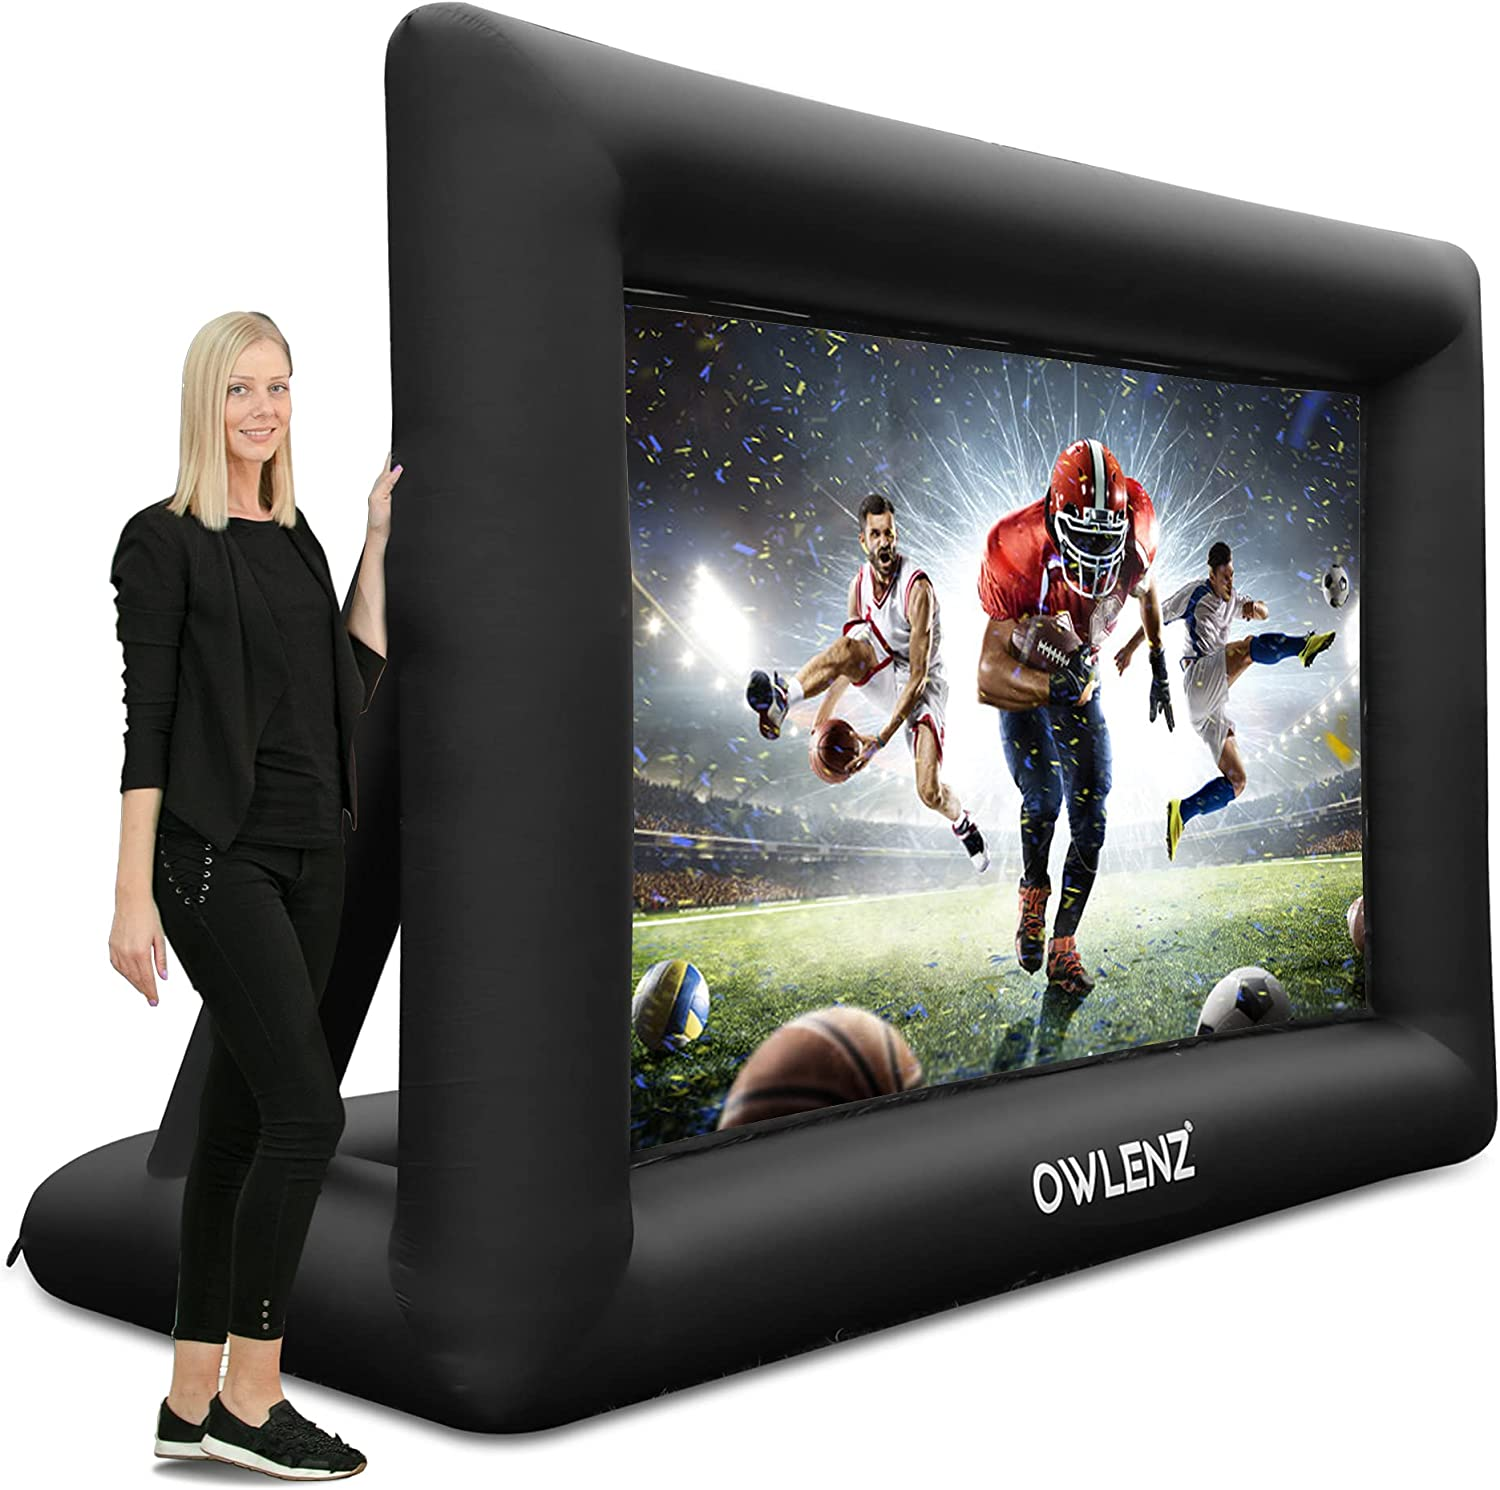 OWLENZ 16 feet Portable Inflatable Home Theater Projector Screen 16:9 4K HD Outdoor and Indoor Inflatable Movie Projection Screen with Inflation Fan and Carrying Bag